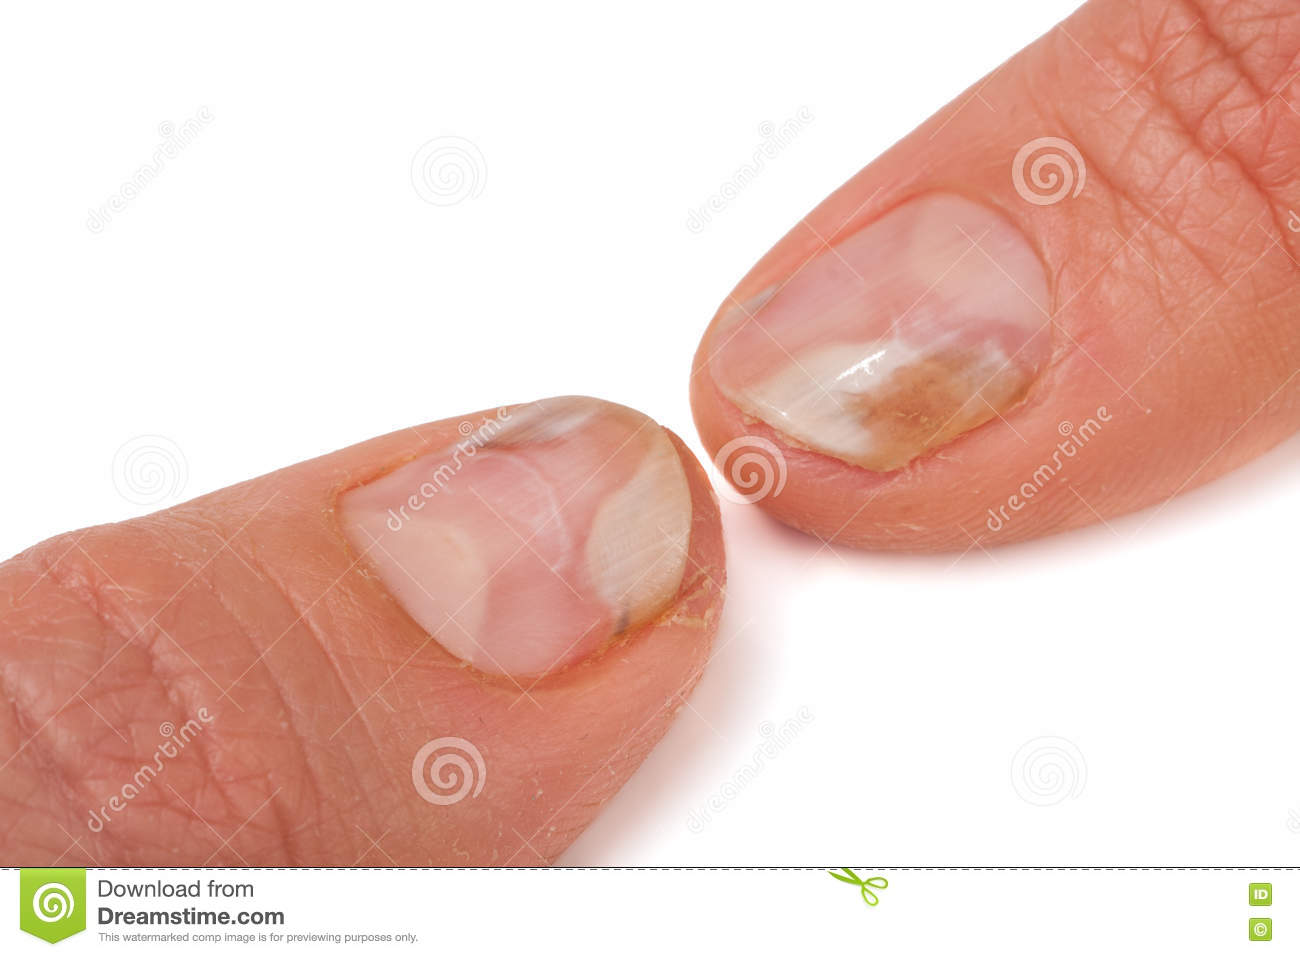 Two Fingers Of The Hand With A Fungus On The Nails Isolated White ...